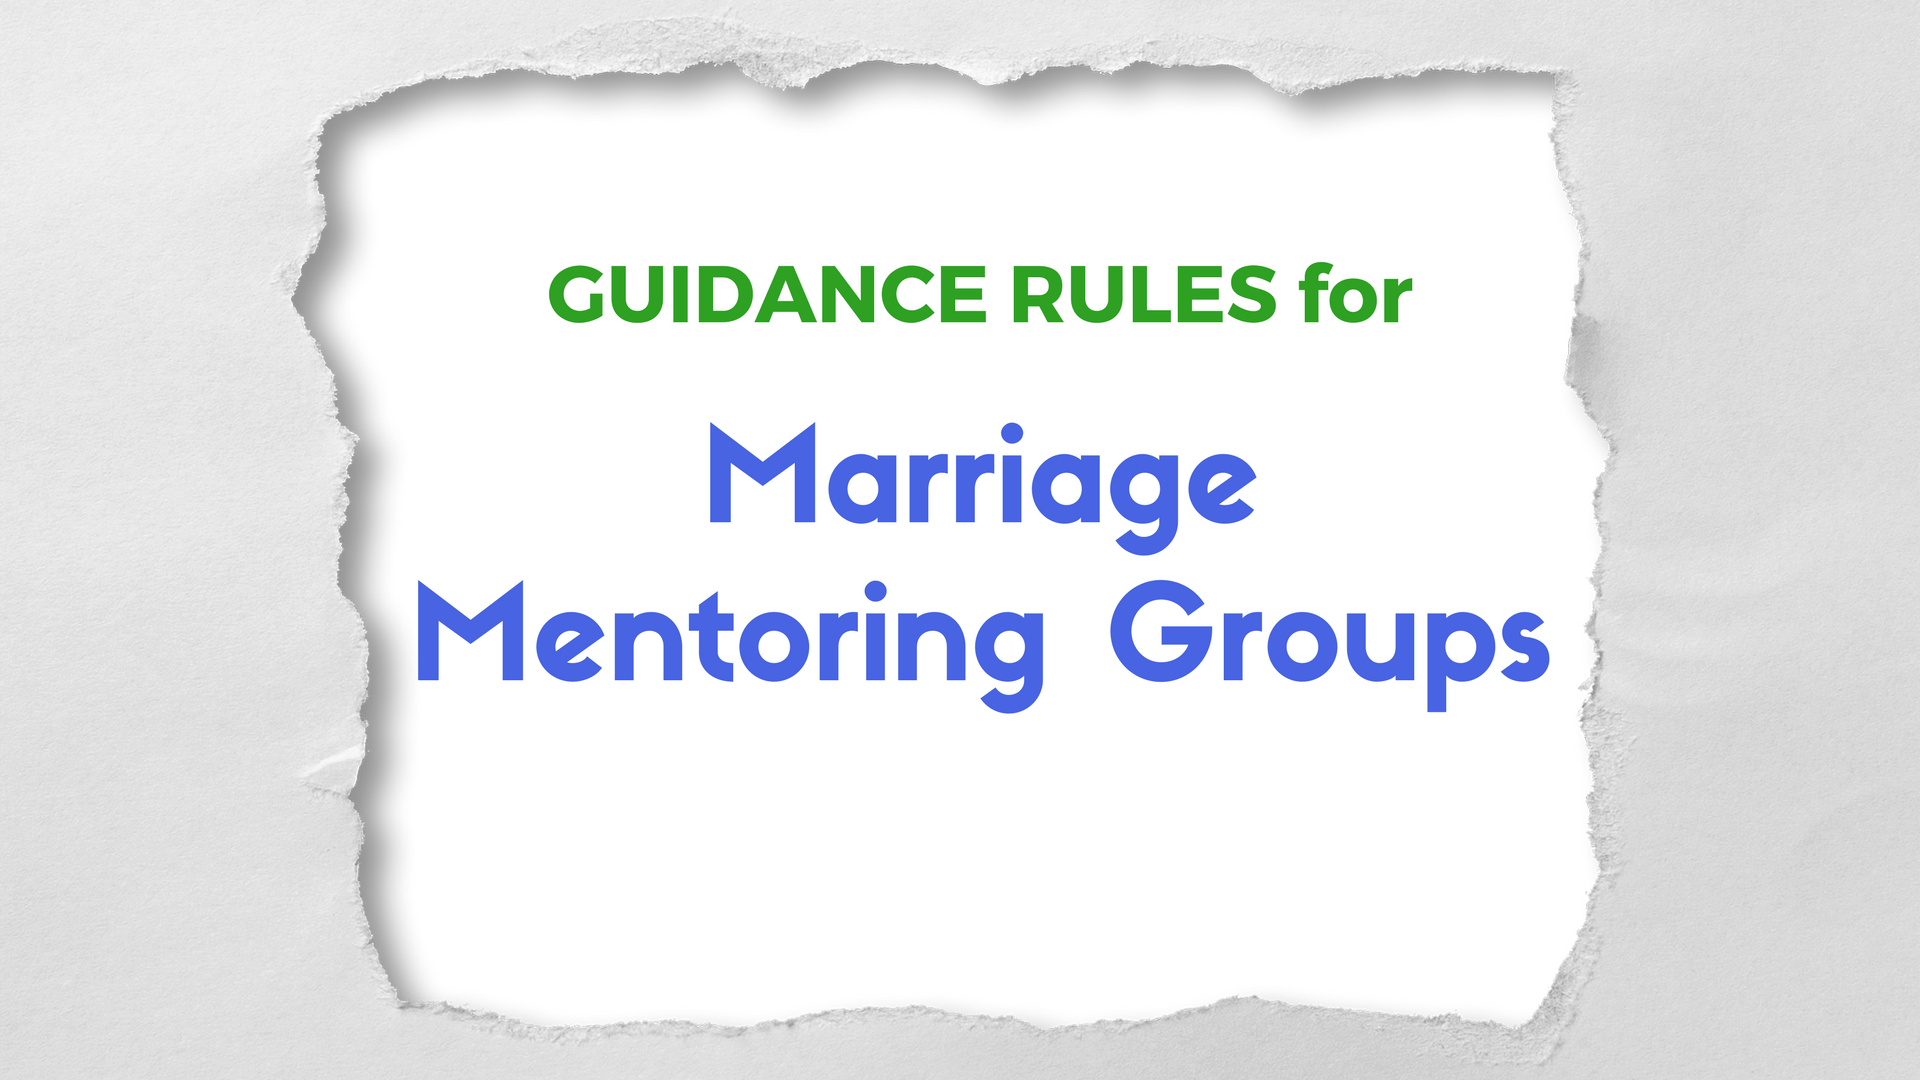 GUIDANCE RULES Marriage Mentoring - Canva - Pixabay